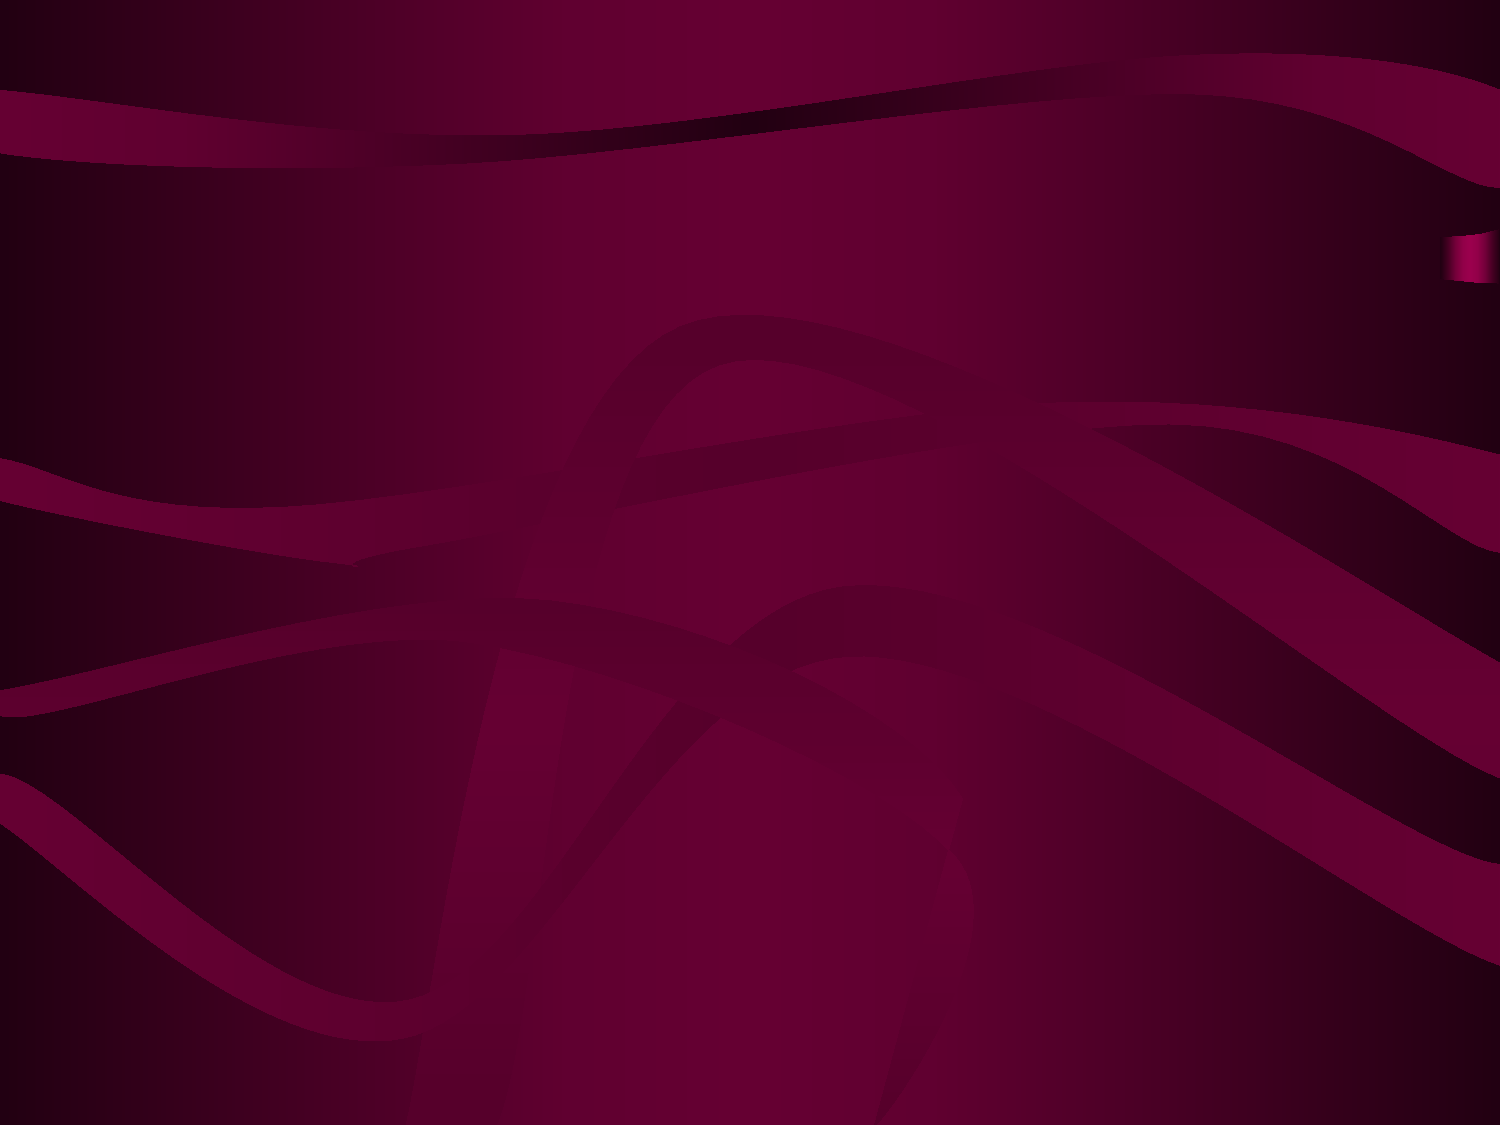 Maroon Backgrounds Wallpapersafari